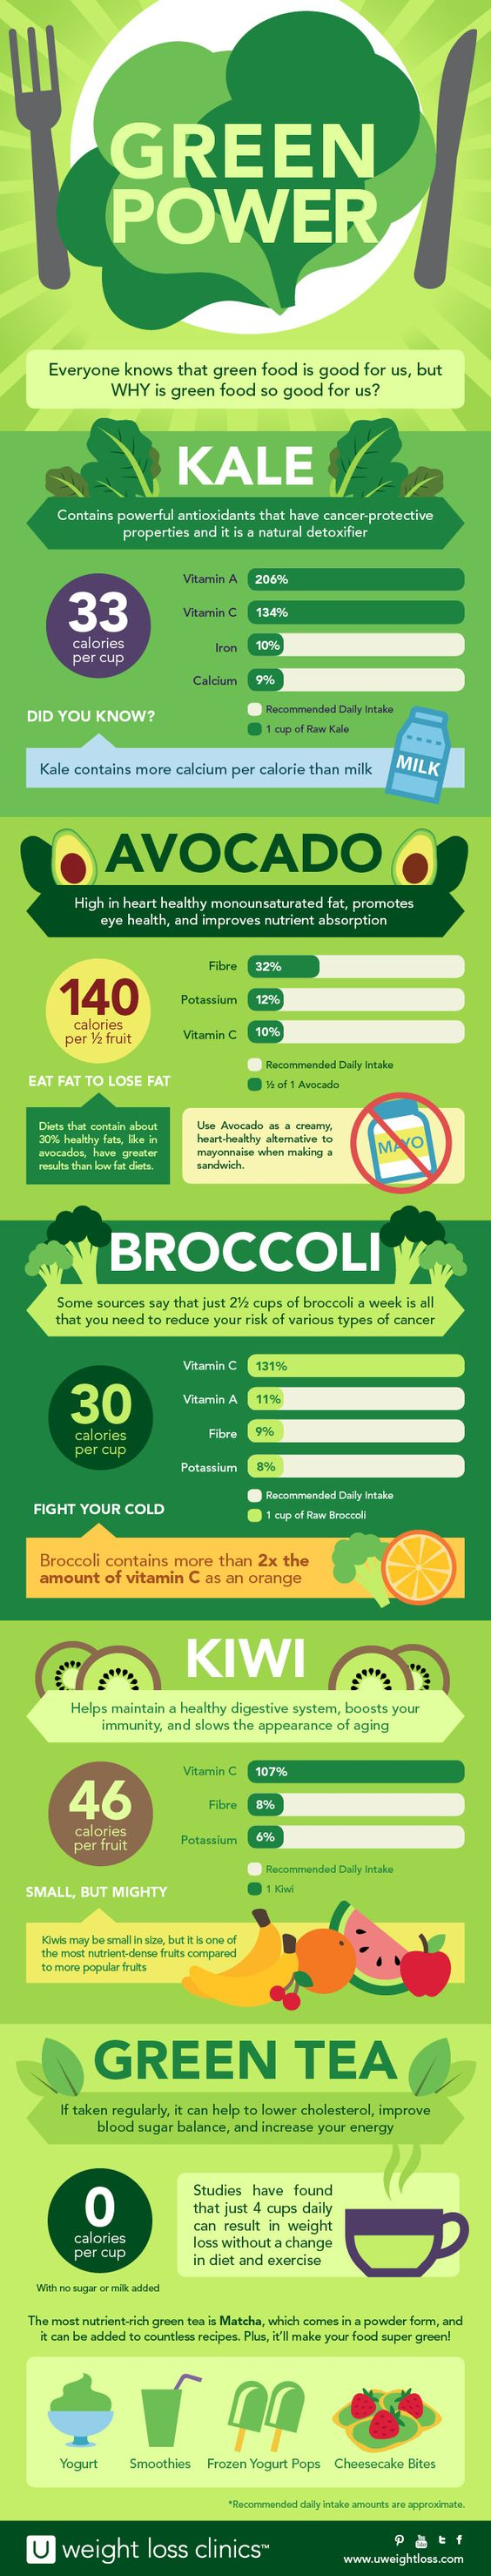 Infographic - Green Power! Why is Kale, Avocado, Broccoli, Kiwi, and Green Tea so good for us? Get your hands on some of this green power and try our Lucky Green Smoothie and our Kale & Orange Salad. #UWeightLoss